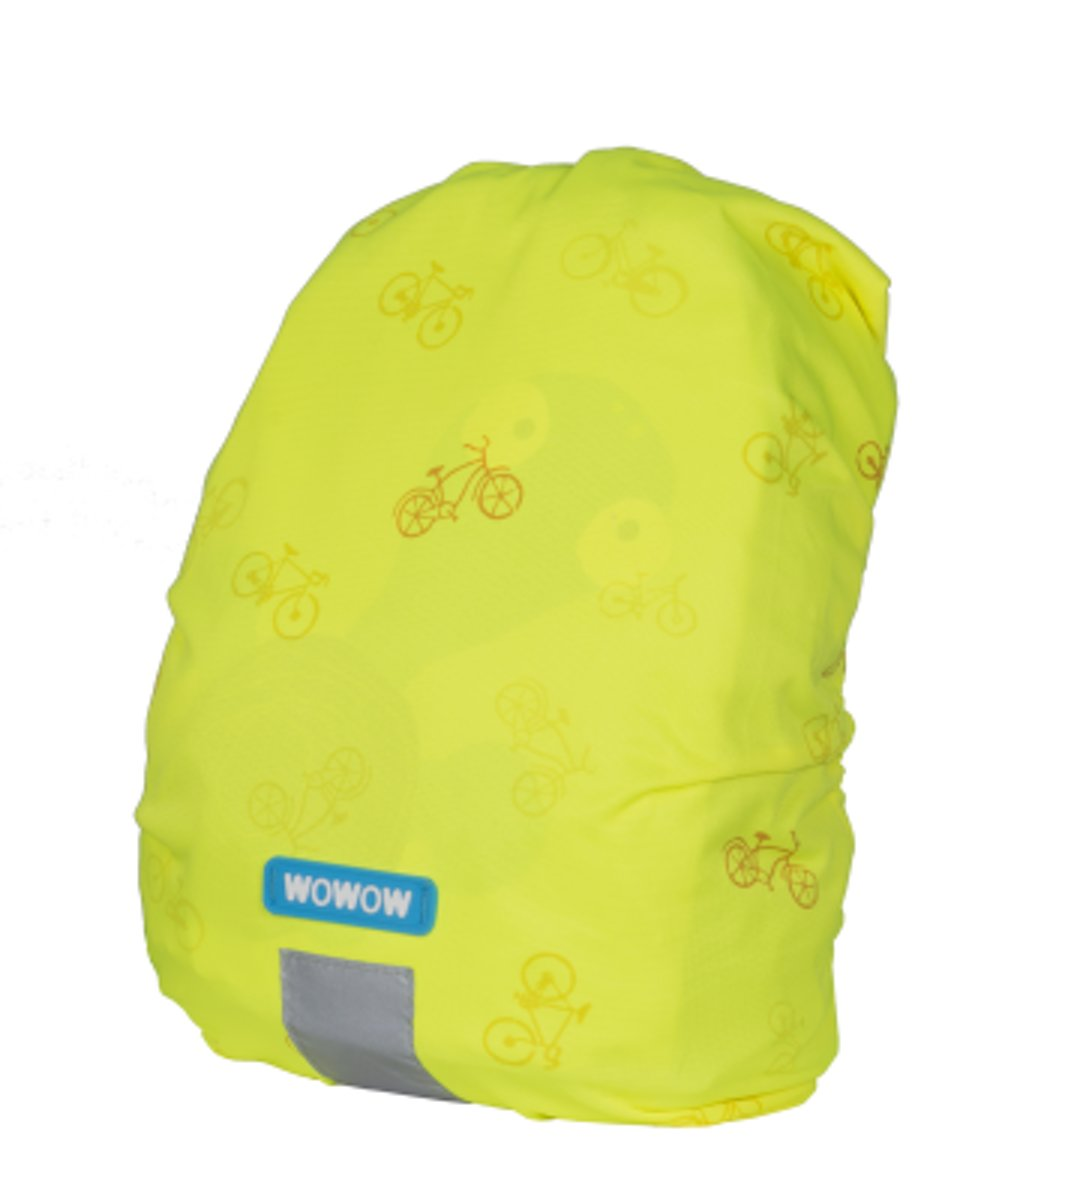 Hoes rugzak Klein 25L (H40cm - B25cm) - Nuty cover Small yellow kopen